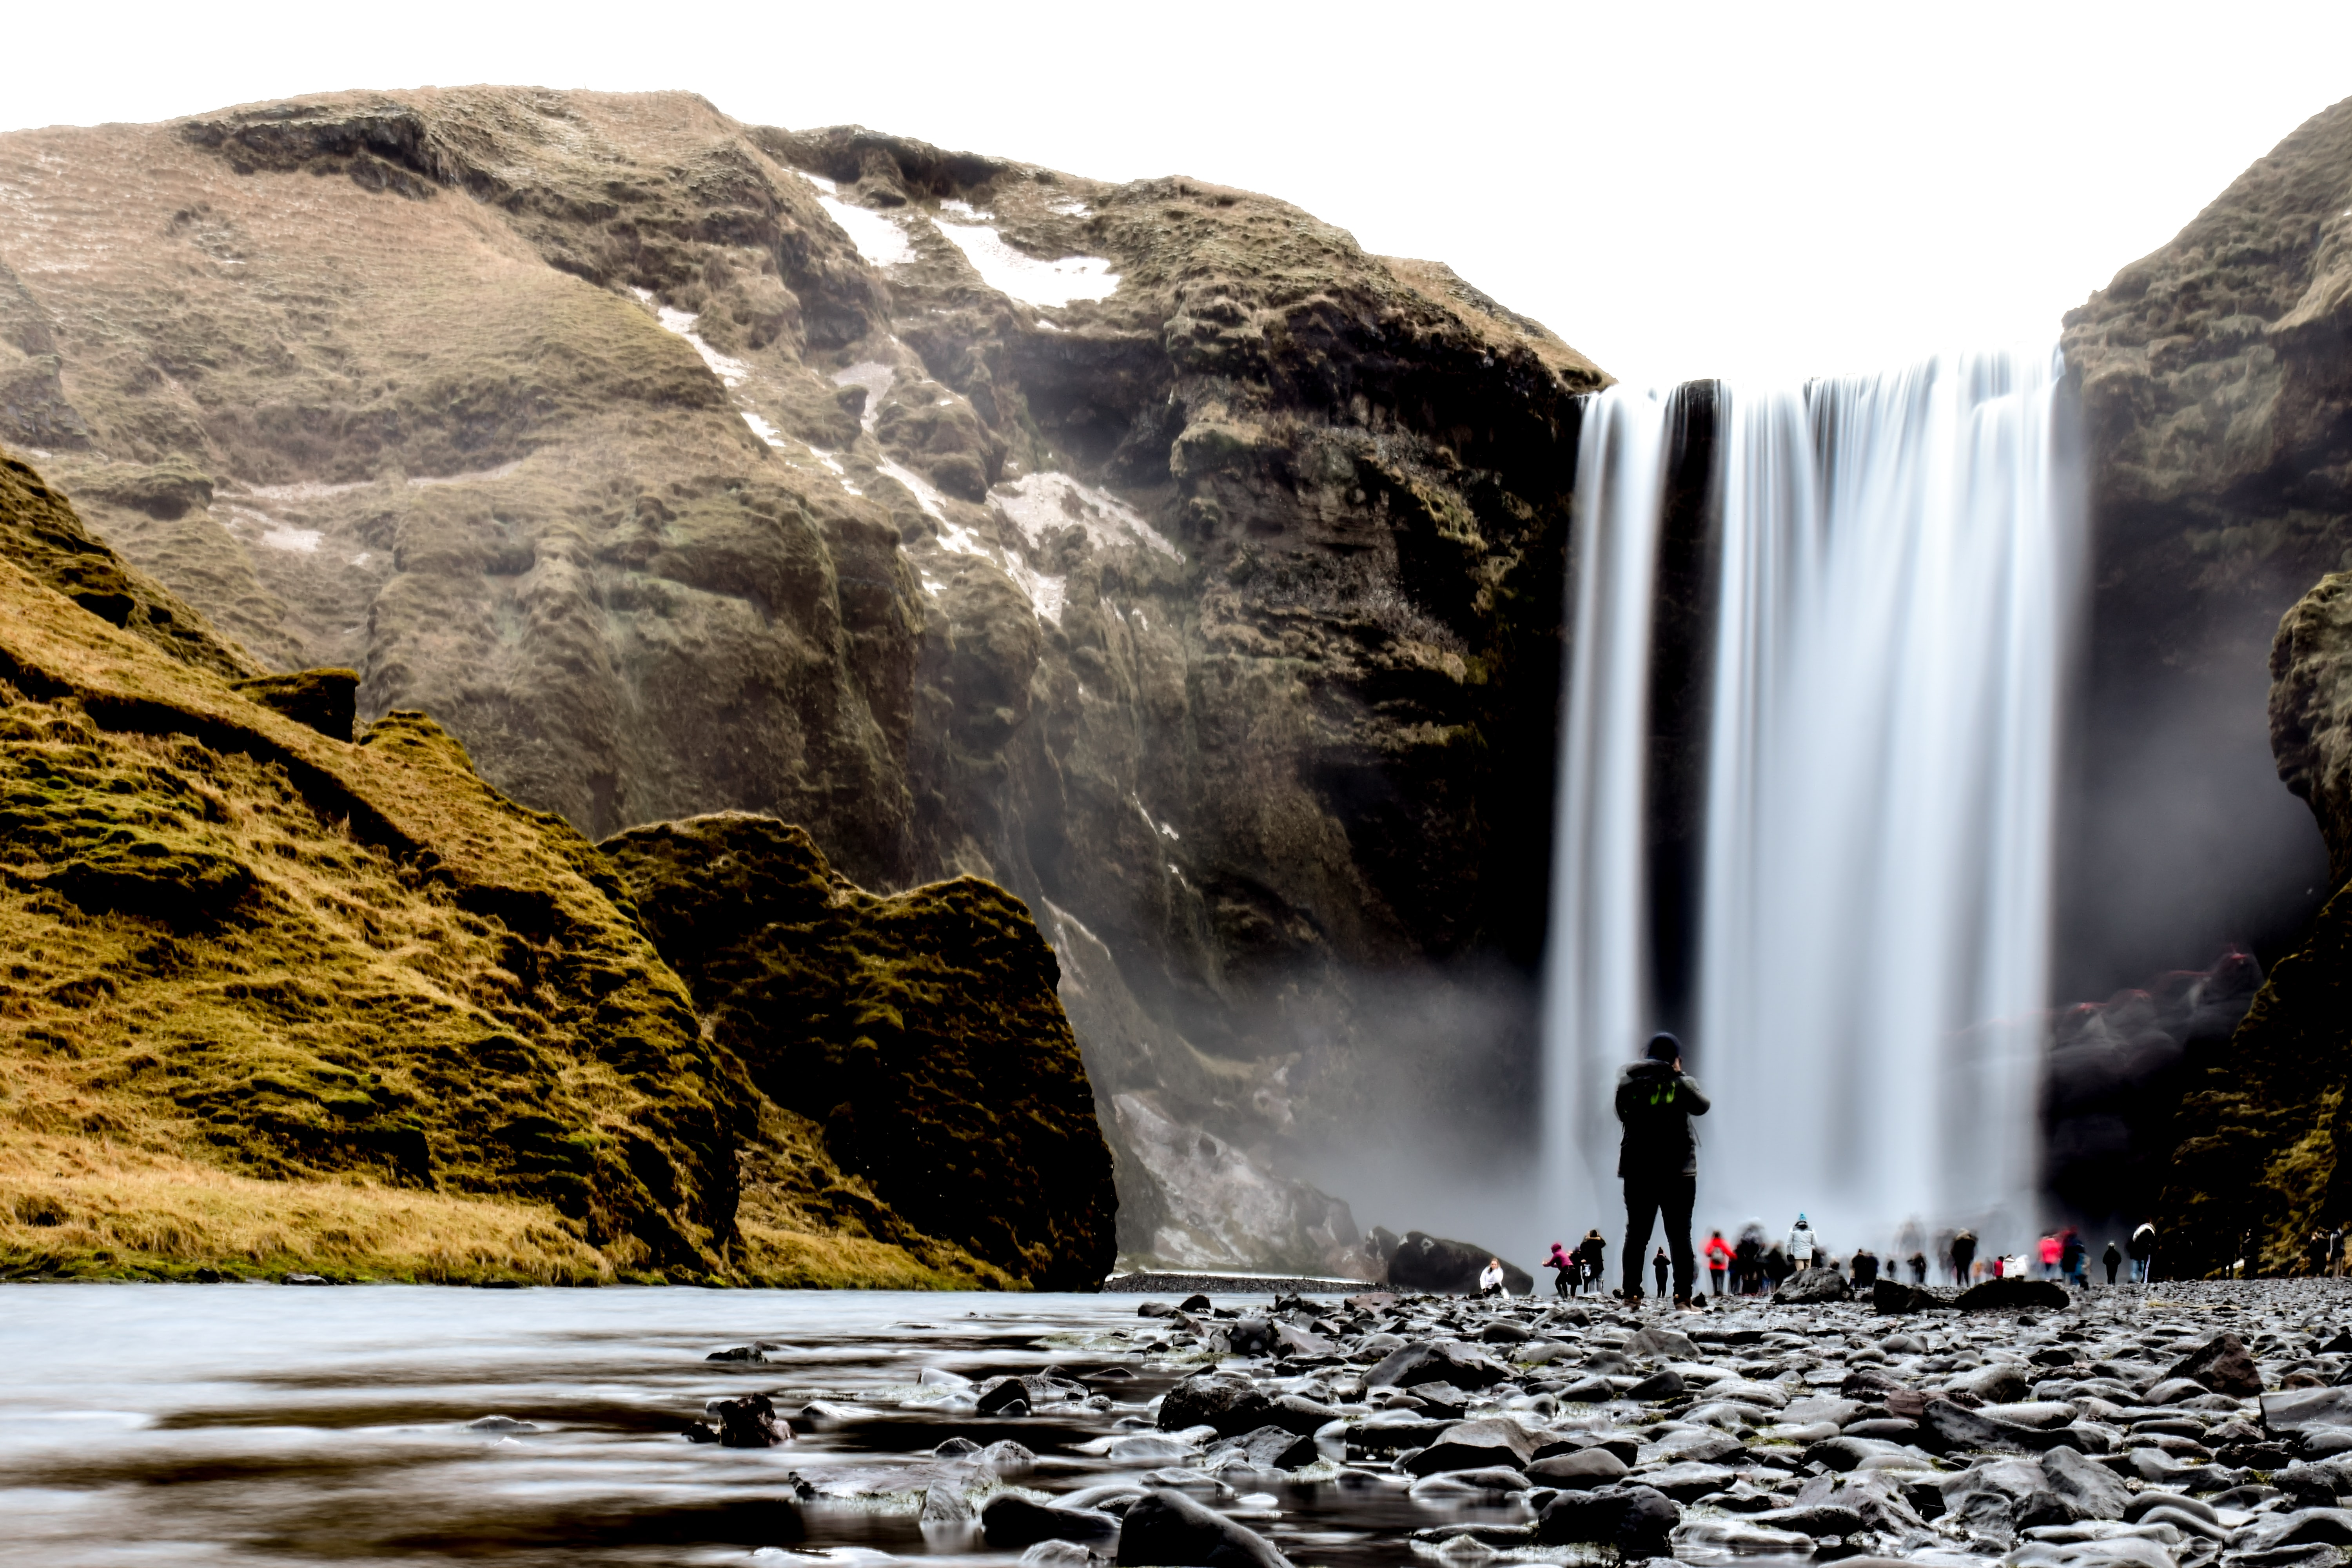 group of people standing near waterfalls